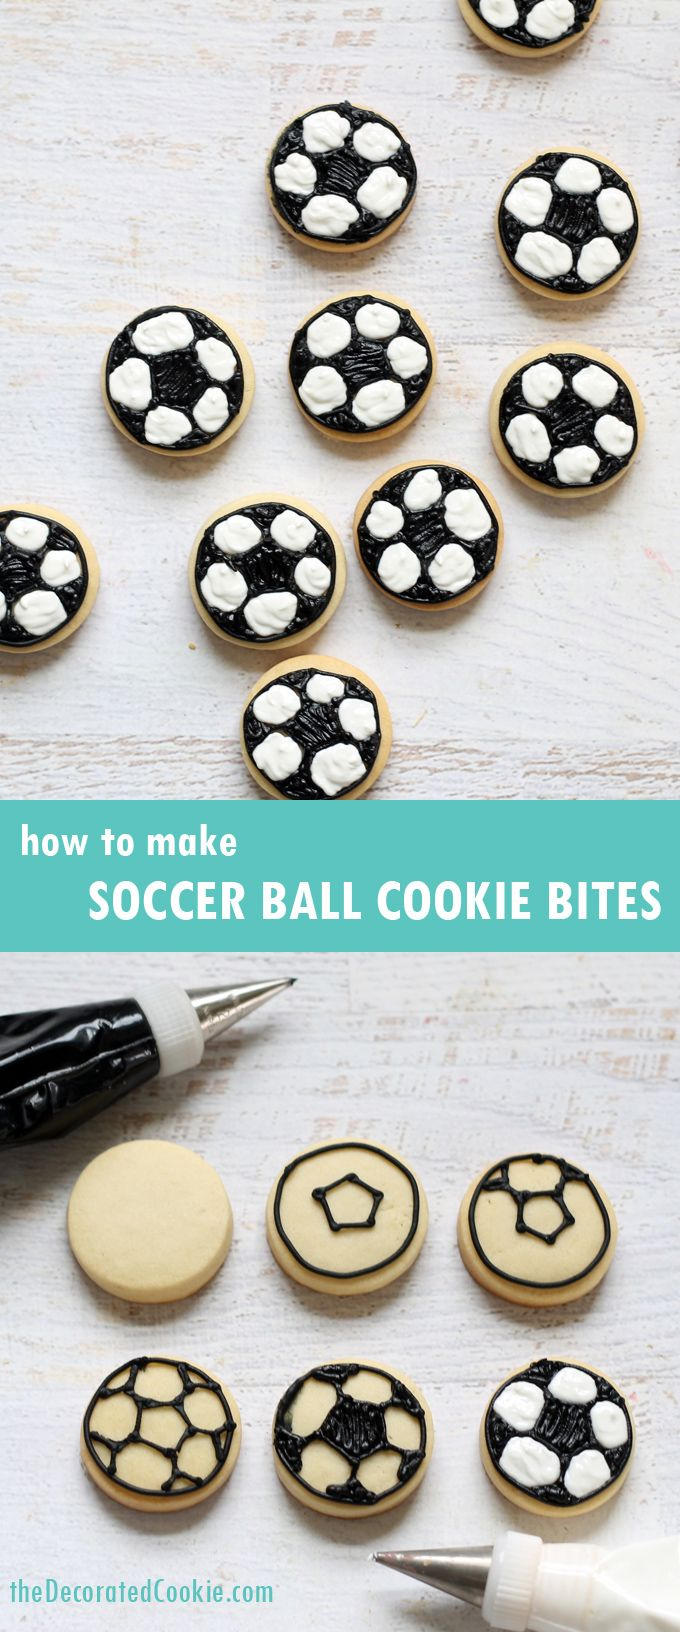 how to make soccer ball cookie bites ~ The Decorated Cookie